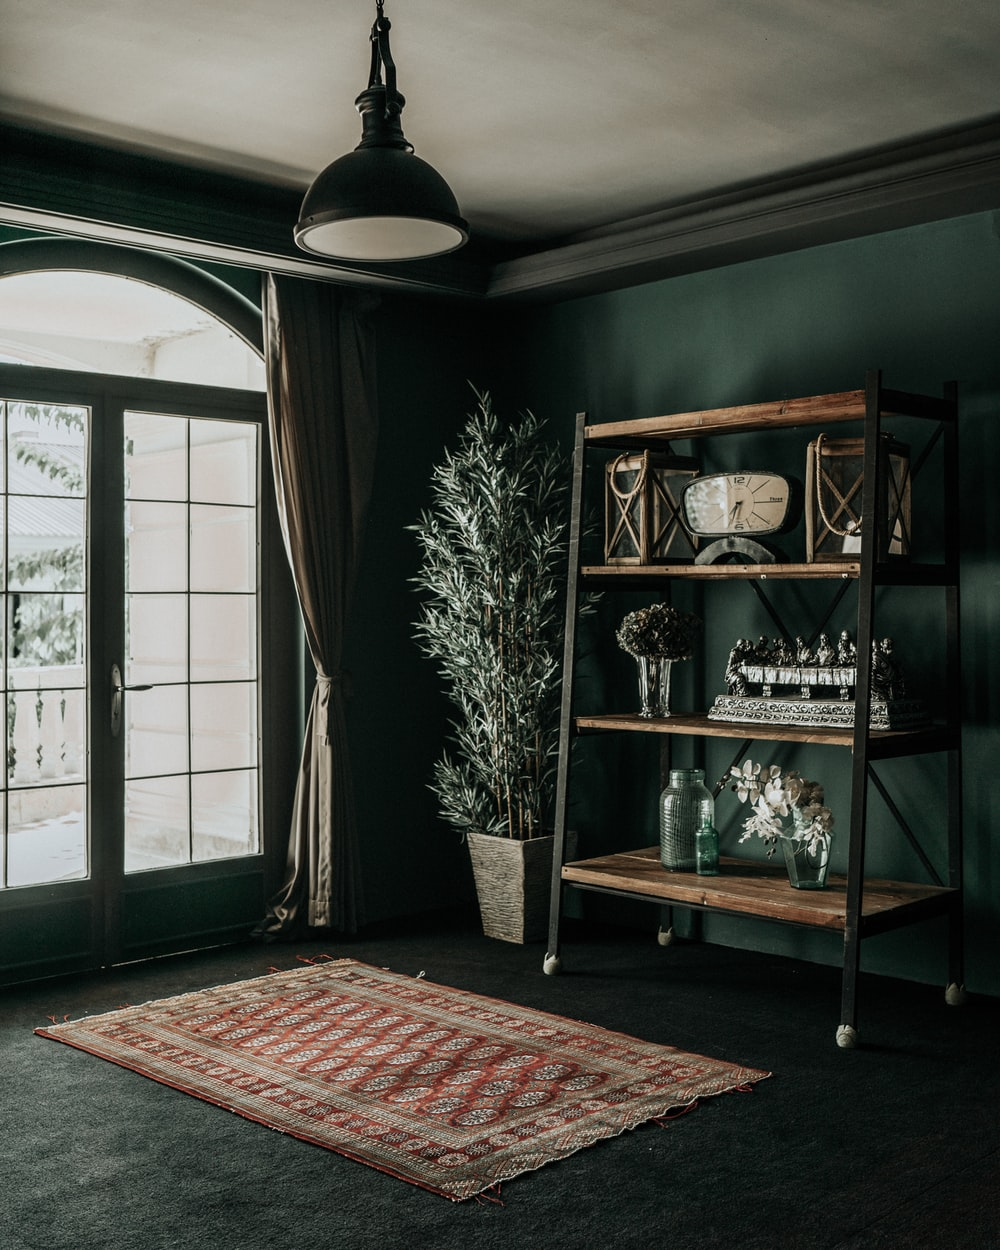 green wooden shelf with books and potted plants